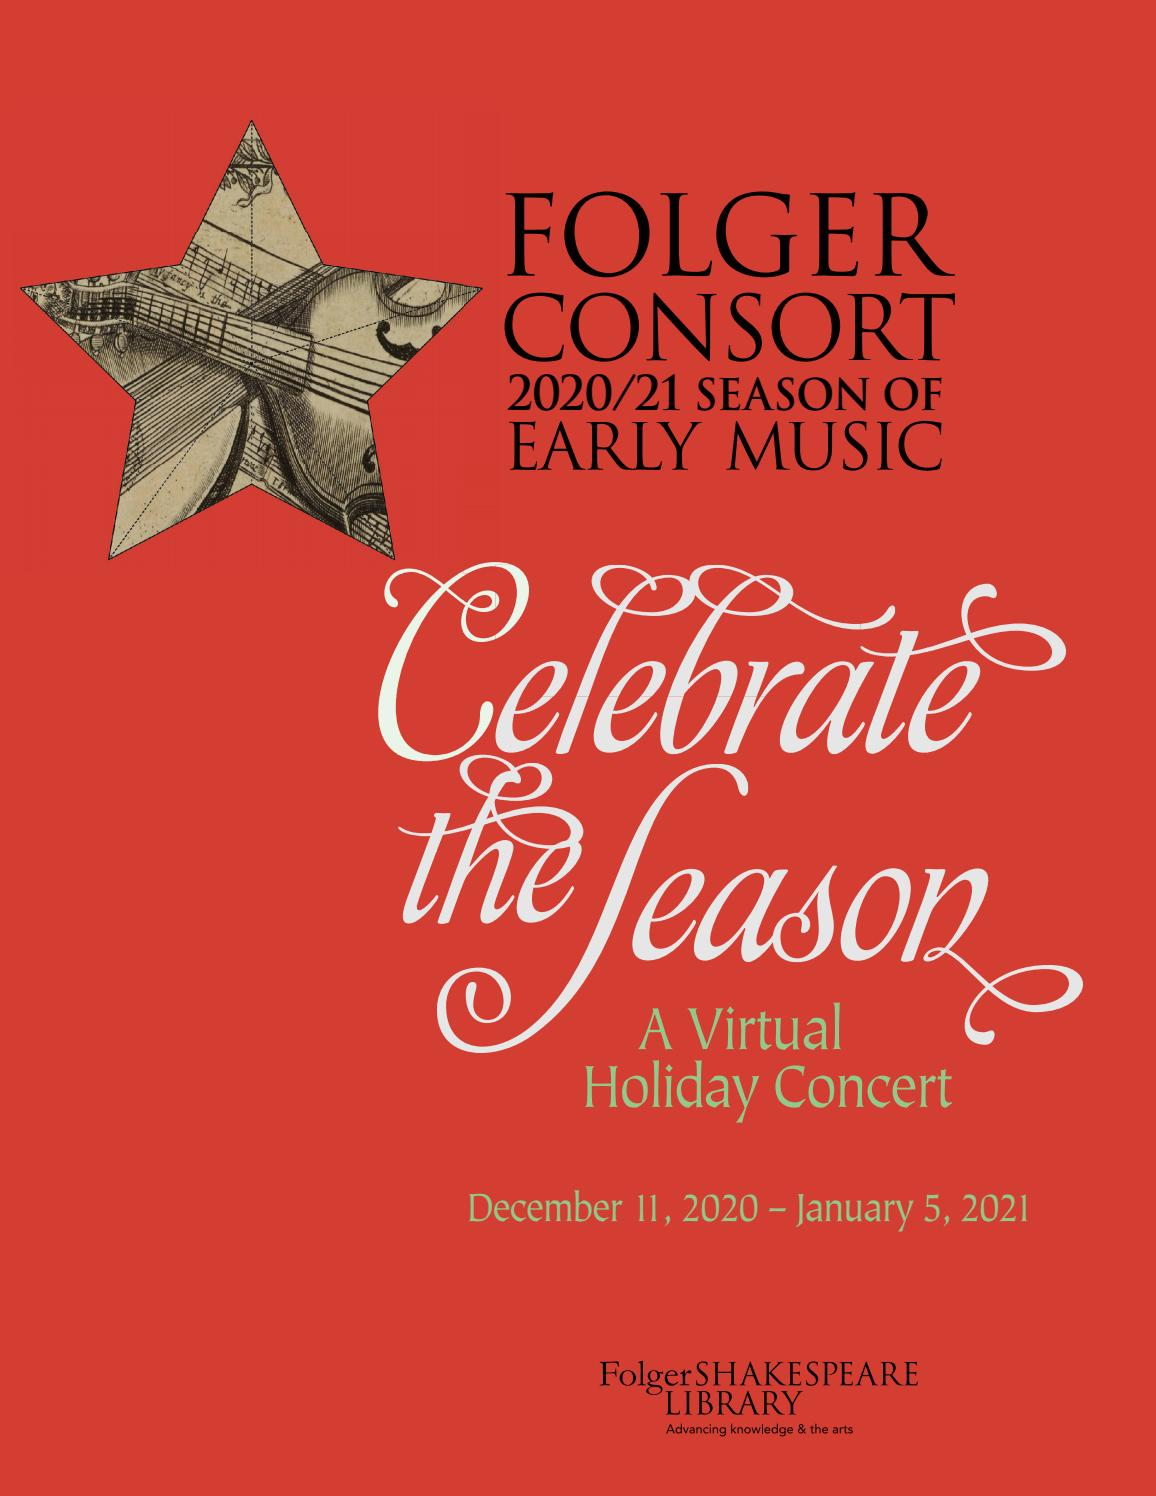 Lutheran Chorale Christmas 2021 Kern County Program For Christmas With The Folger Consort A Virtual Concert By Peter Eramo Issuu